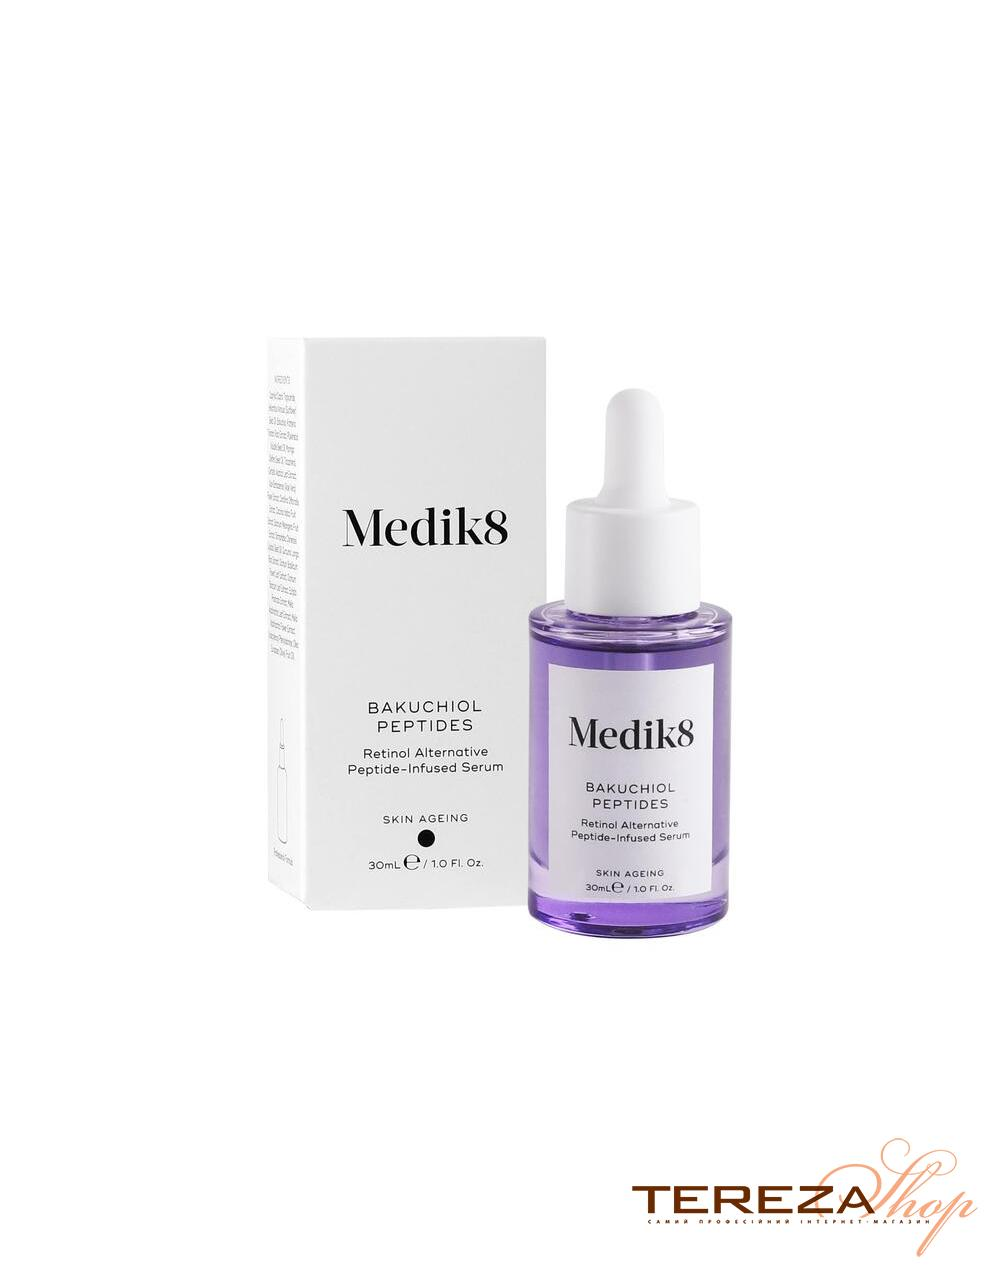 BAKUCHIOL PEPTIDES  MEDIK8 | Tereza Shop